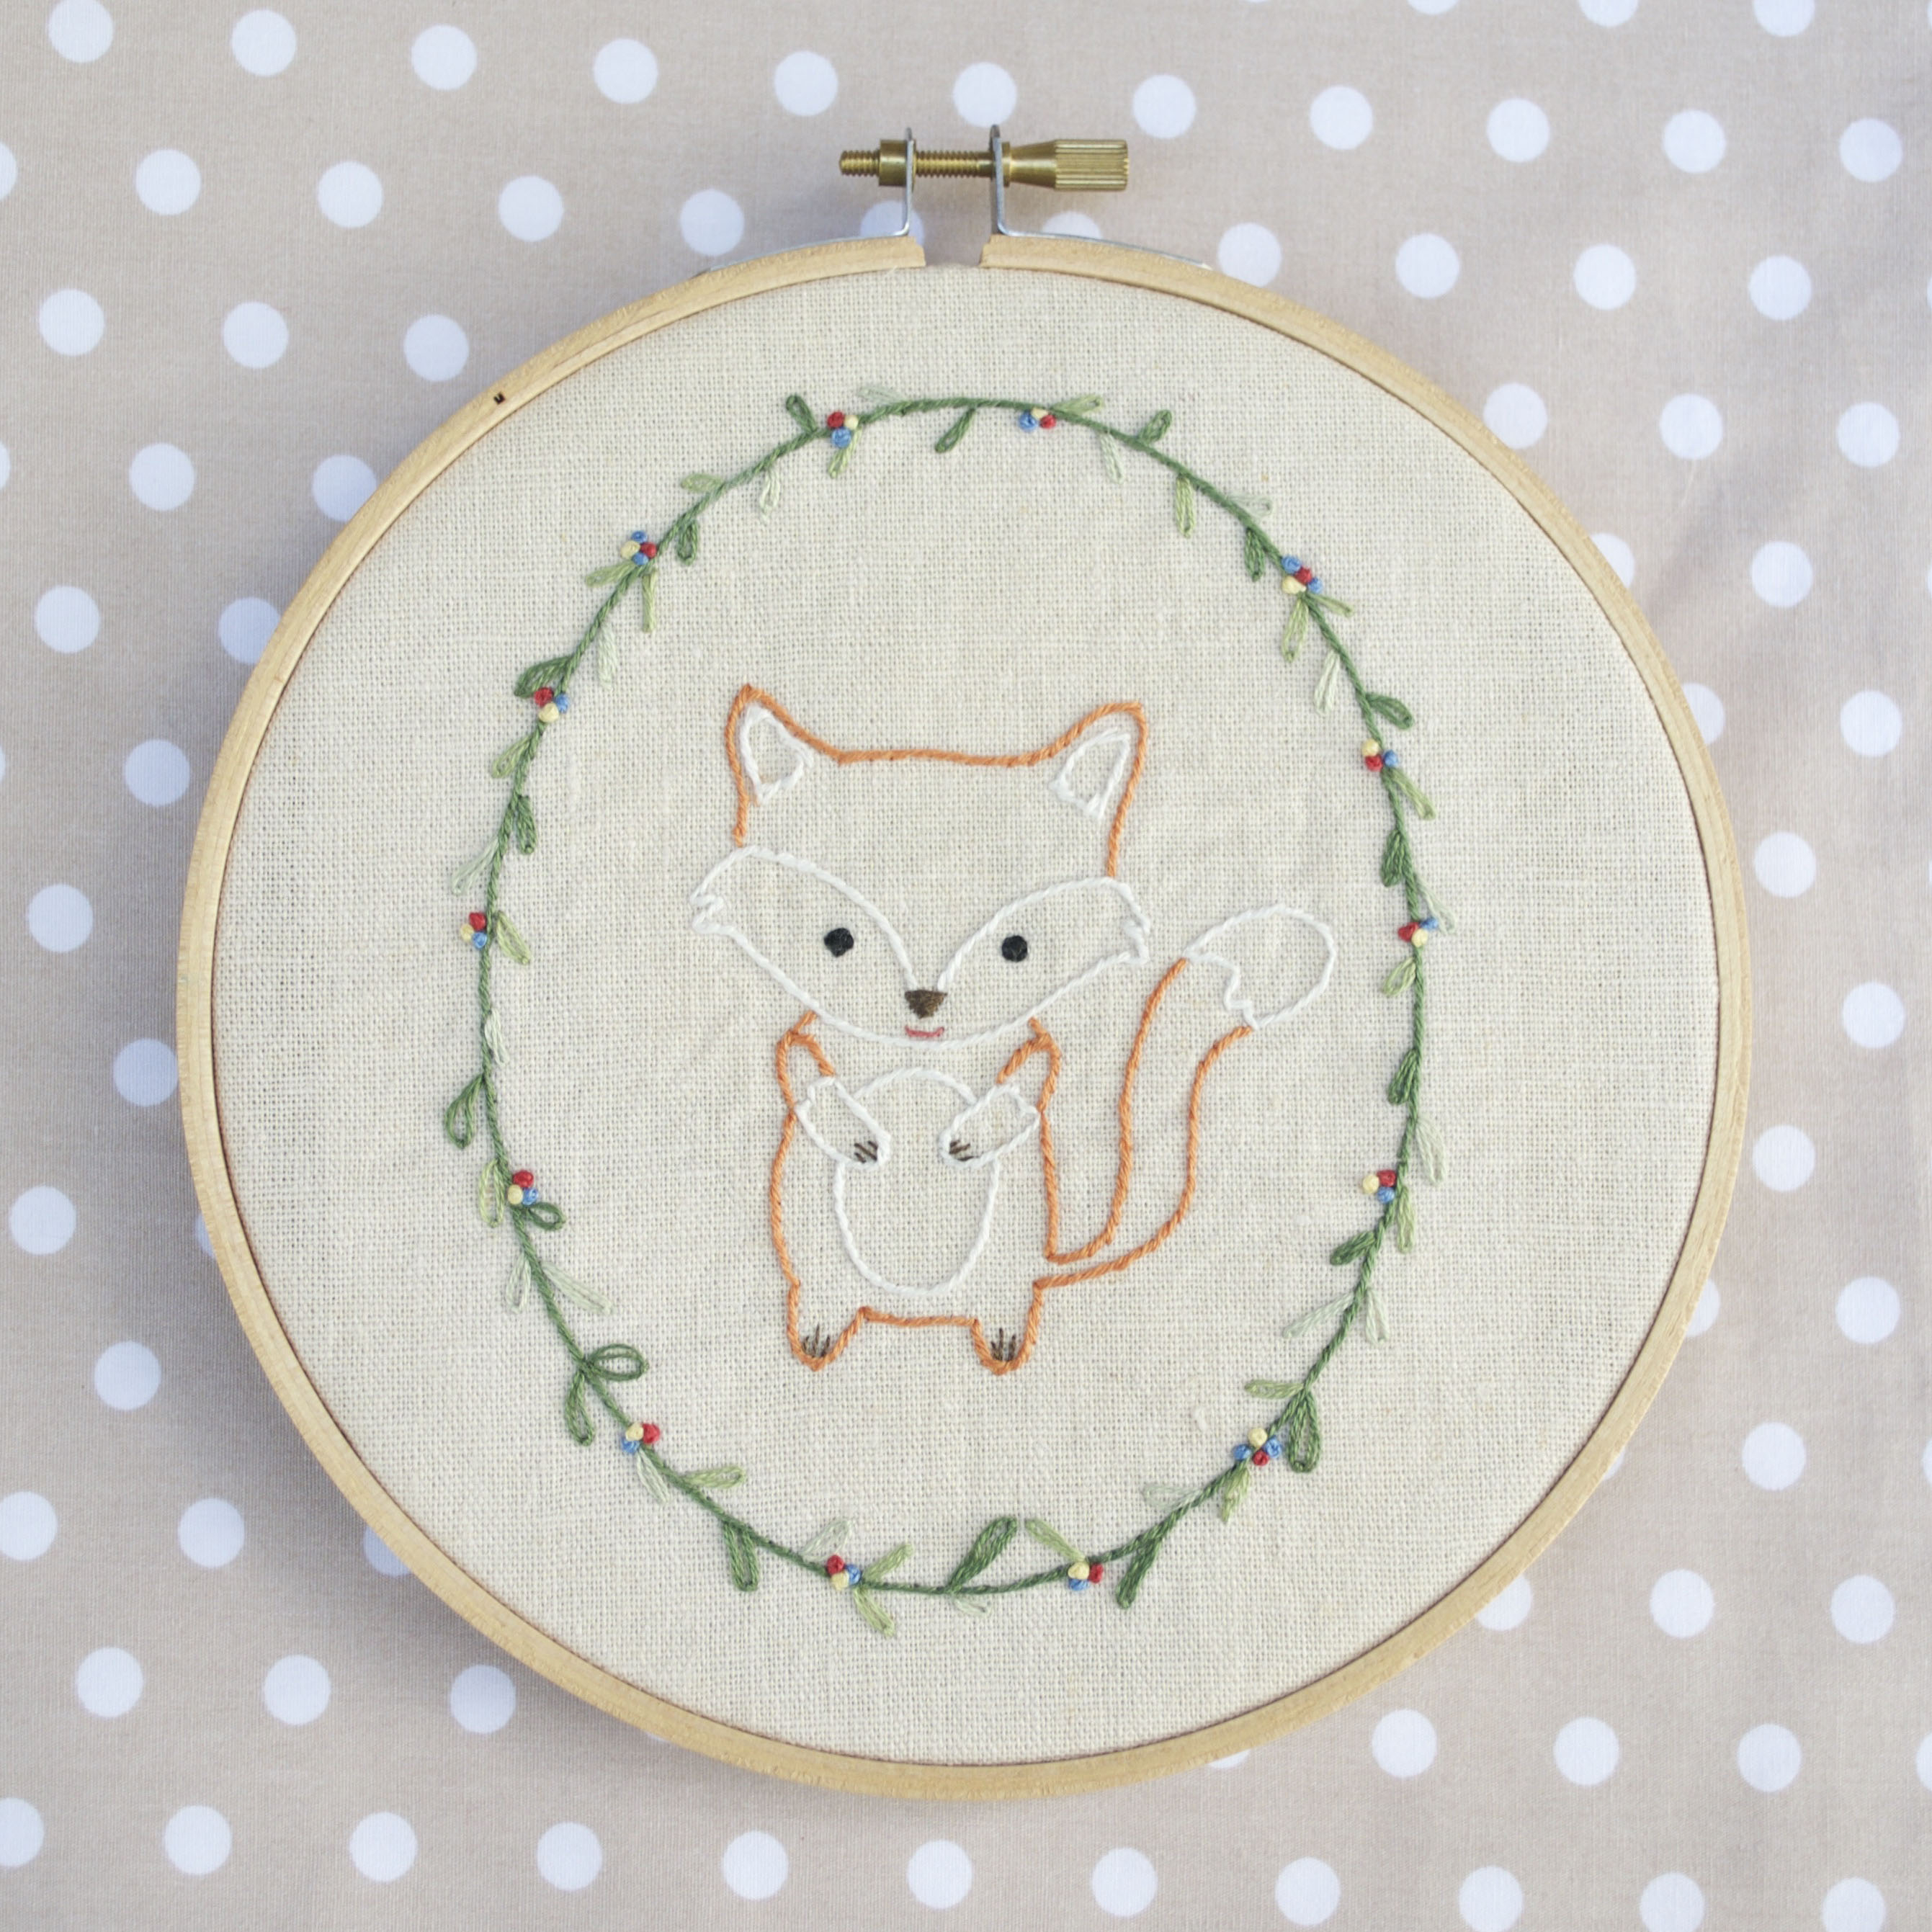 How To Make Hand Embroidery Patterns Little Fox Hand Embroidery Pdf Pattern Instructions